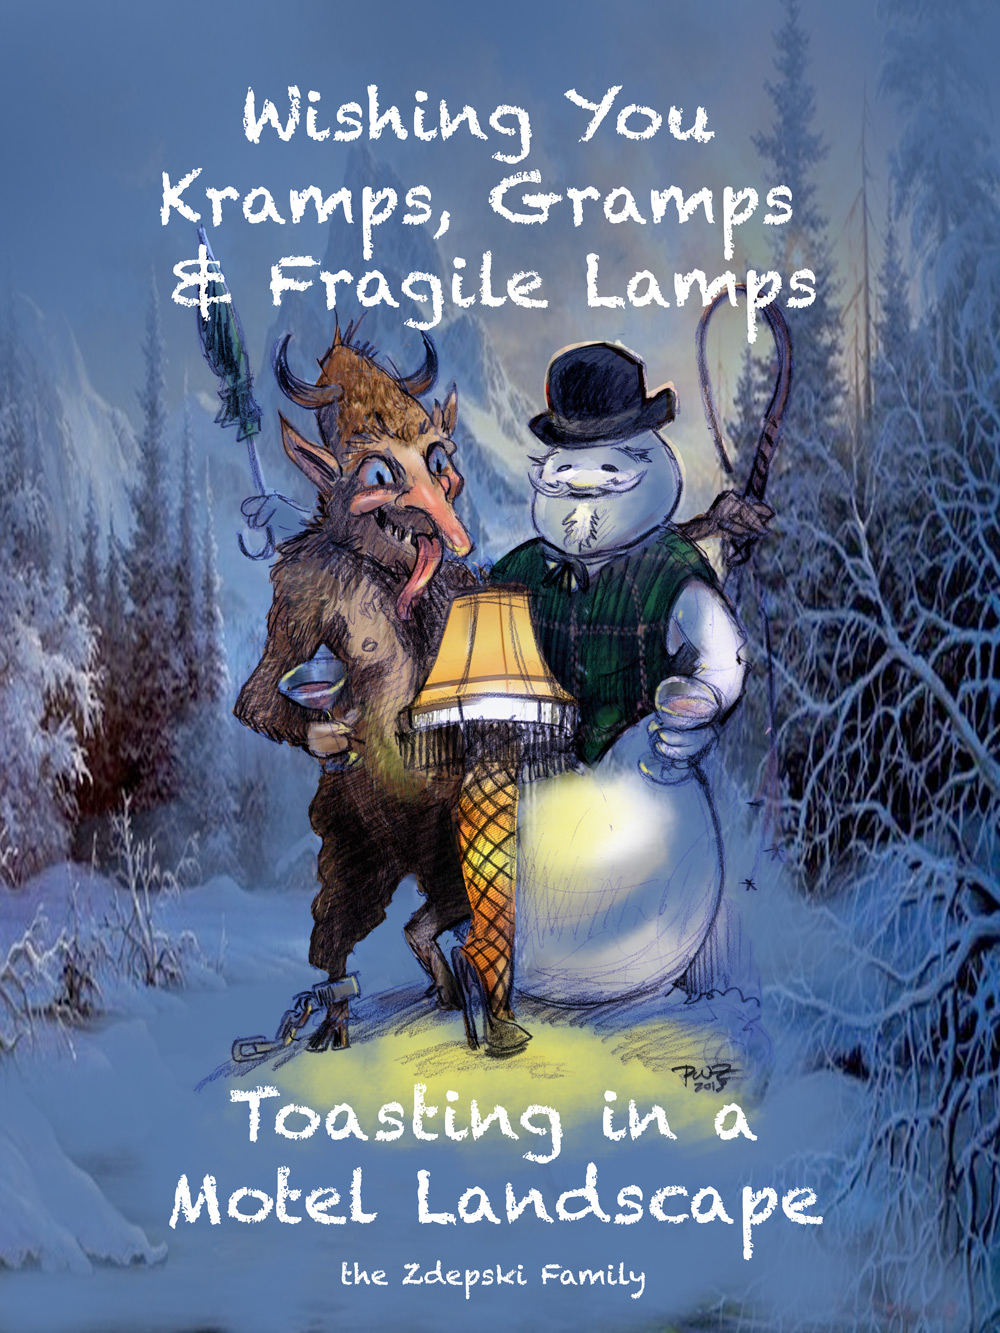 Wishing You Kramps, Gramps and Fragile Lamps Toasting in a Motel Landscape. Merry Christmas from Zillustration.com